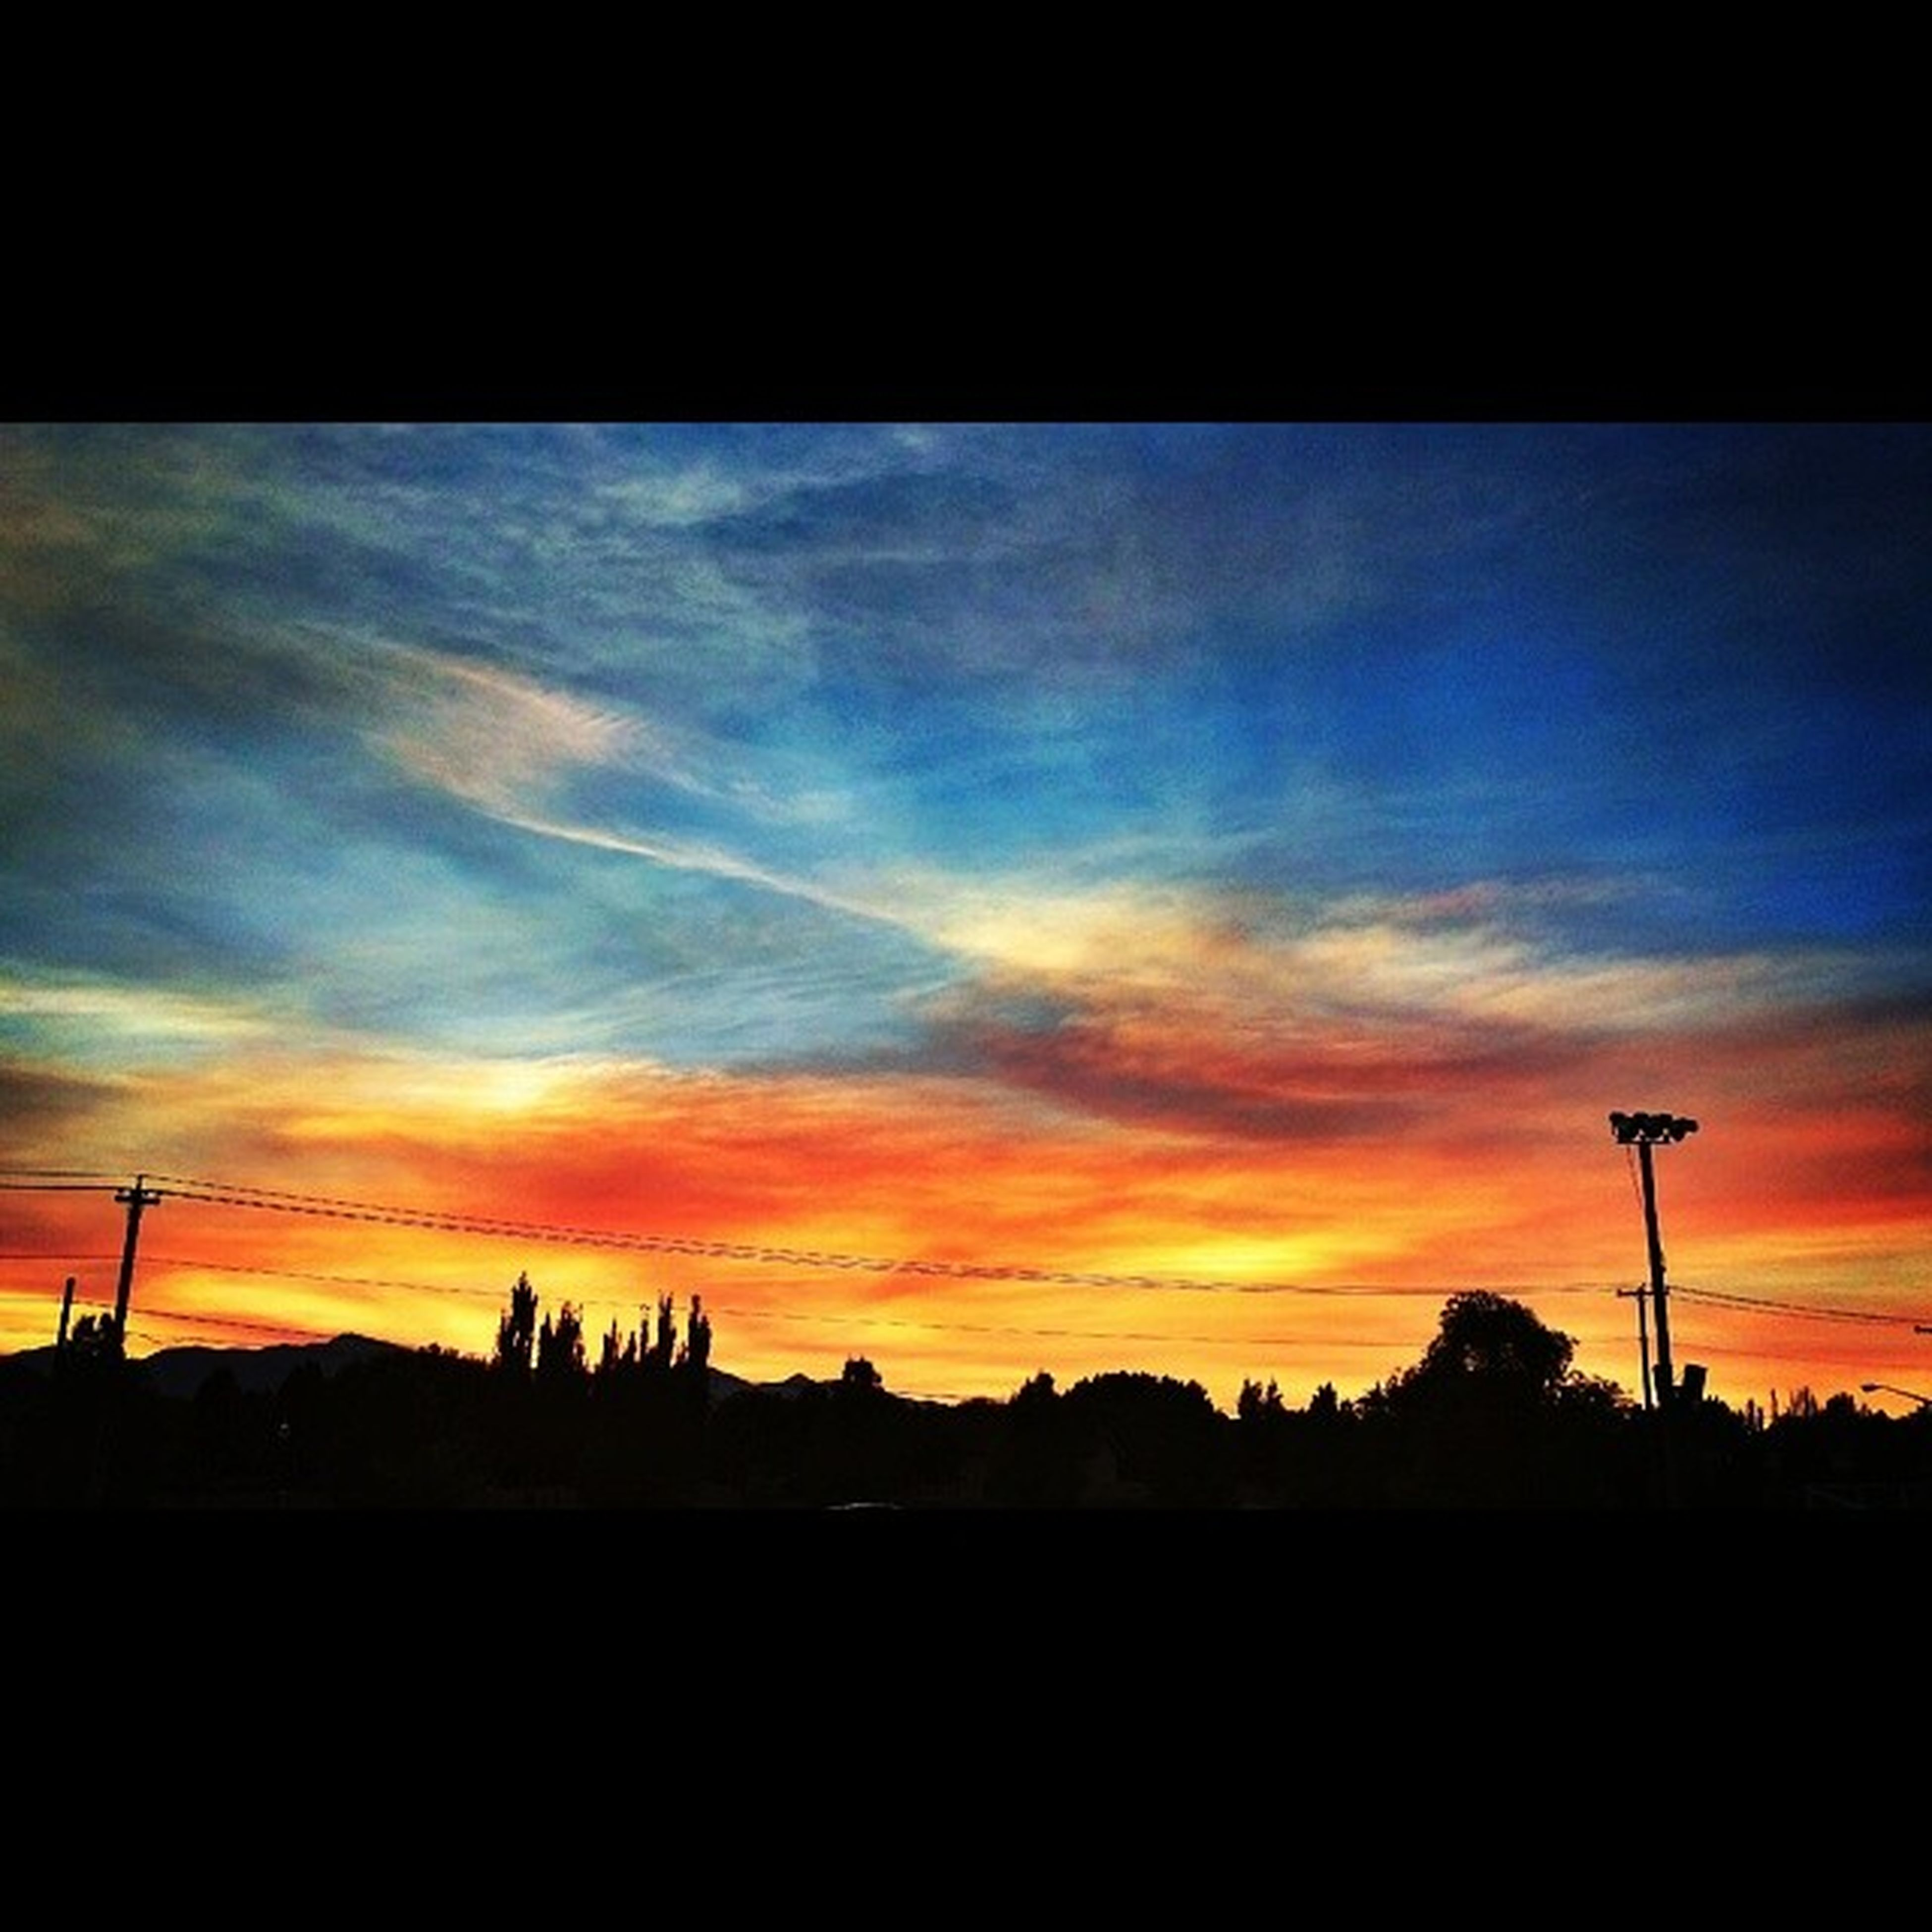 ..the sunset on july 24, 2014...167 years after the pioneers arrived in the valley. they picked a great spot!! BeUTAHful Skywatcher Colorsofthewind Samoanflagday fadedglory